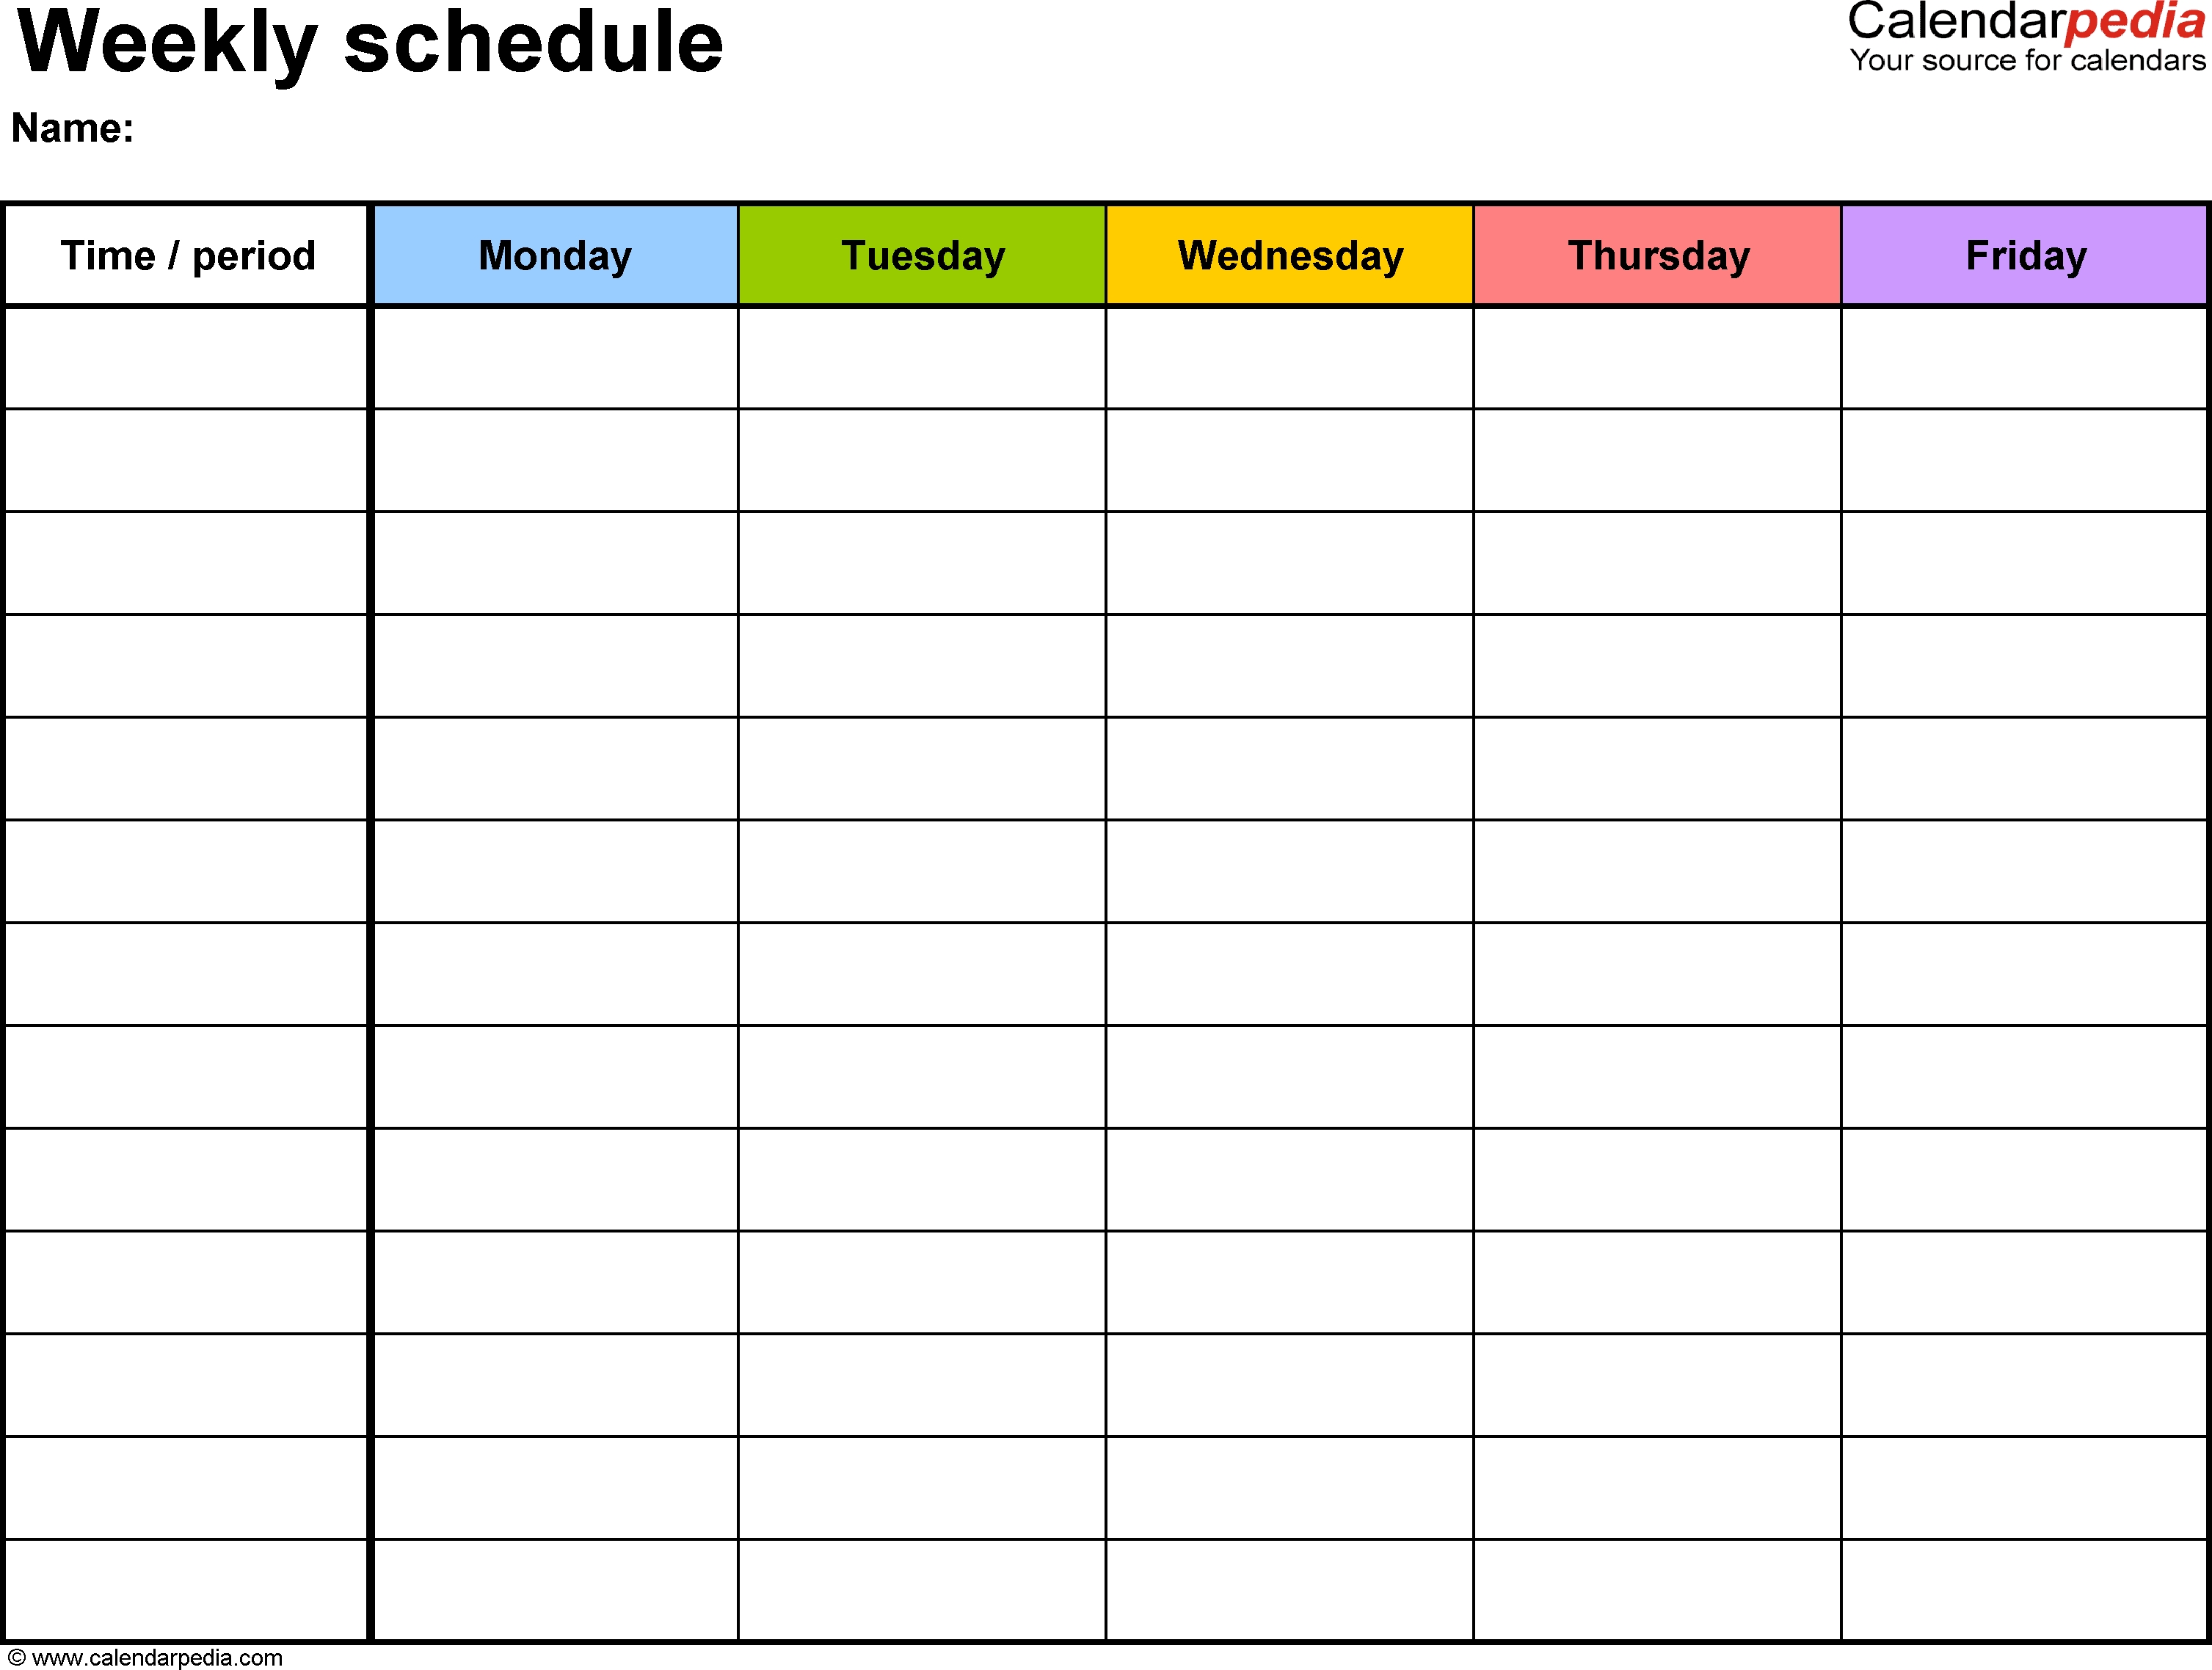 Free Weekly Schedule Templates For Excel - 18 Templates_Blank Calendar 8 Weeks